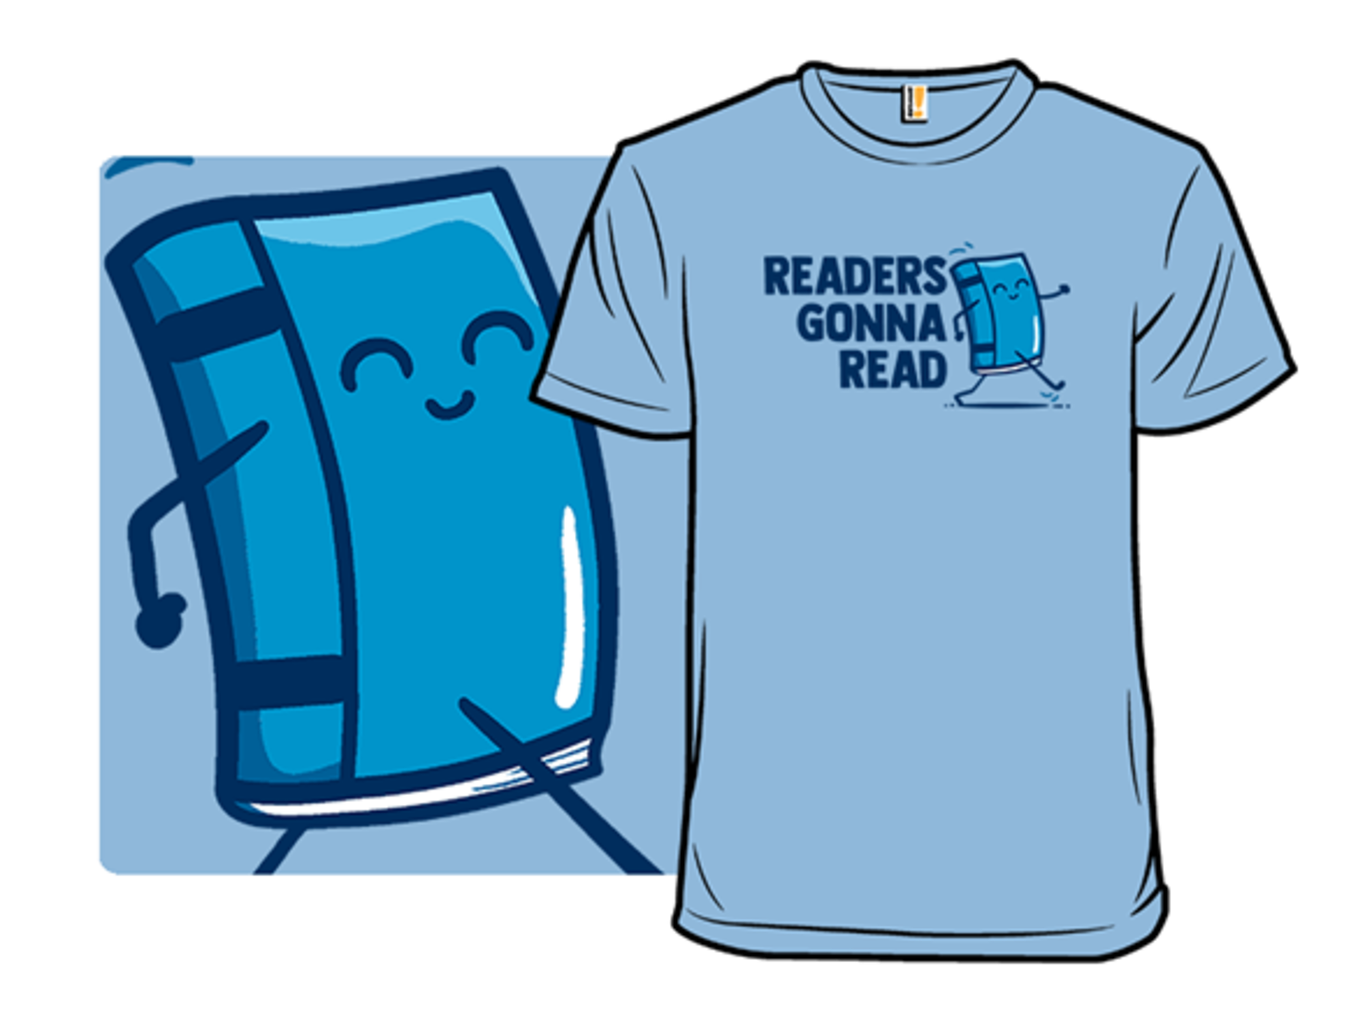 Woot!: Readers Gonna Read - $15.00 + Free shipping